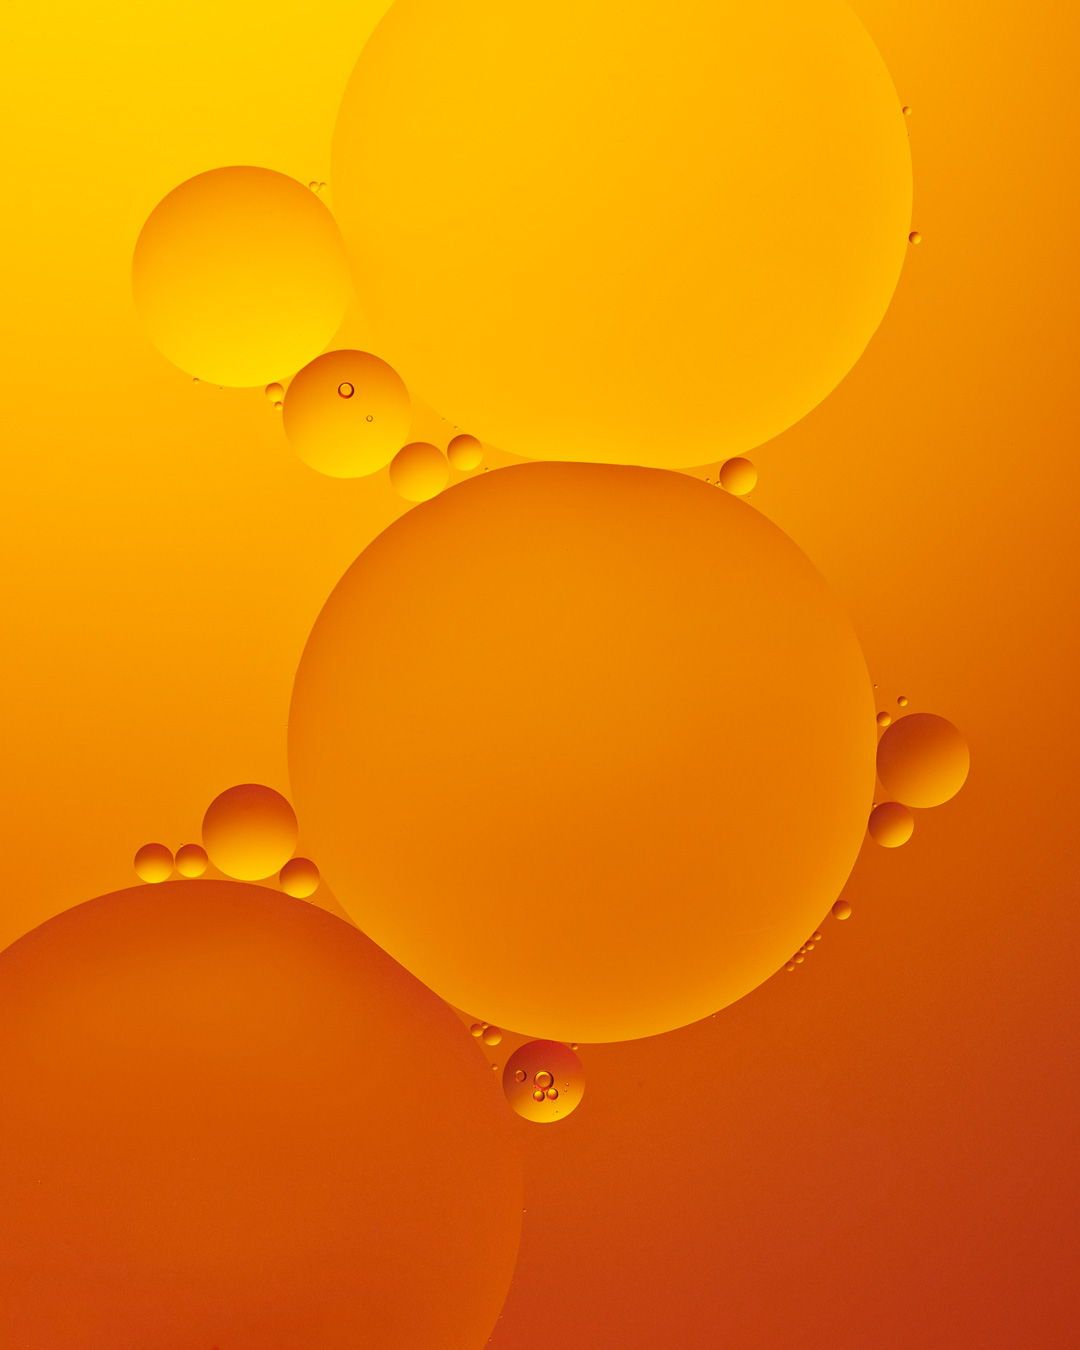 Creative orange and yellow oil and water photography shot with a macro camera. www.jennagang.com #oilandwater #oilandwaterphotography #macrophotography #closeupphotography #colorfulphotography #oilandwaterhowto #oilandwaterstyling #stillifestyling #stilllifeideas #creative ideas #creativephotography #prettystillife